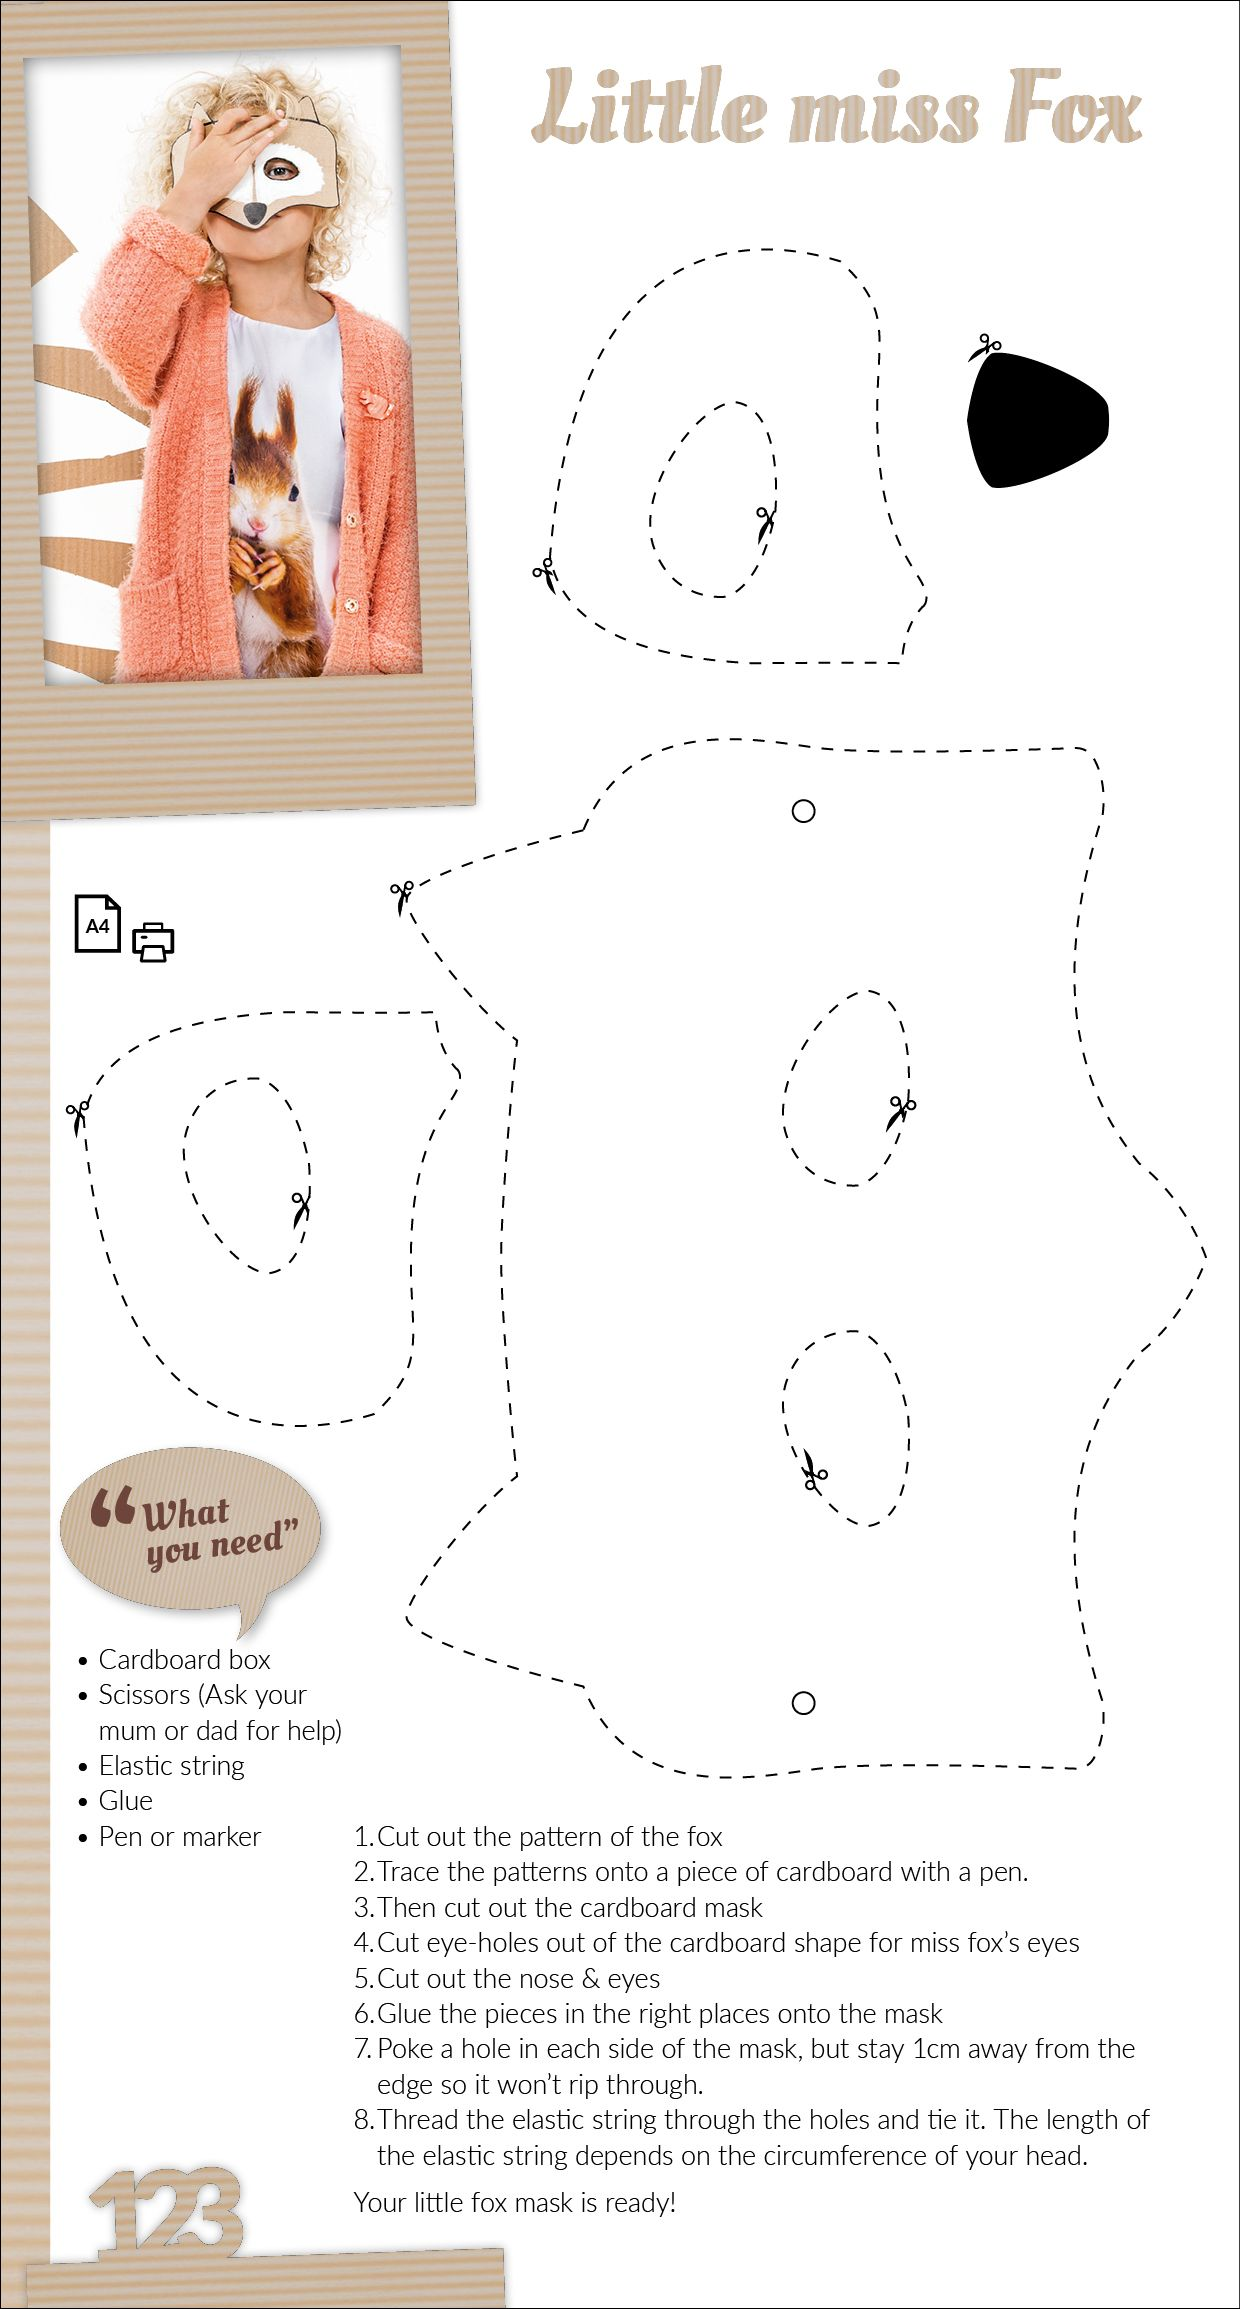 Little miss fox cardboard mask template jbc s diy little miss fox cardboard mask template pronofoot35fo Images